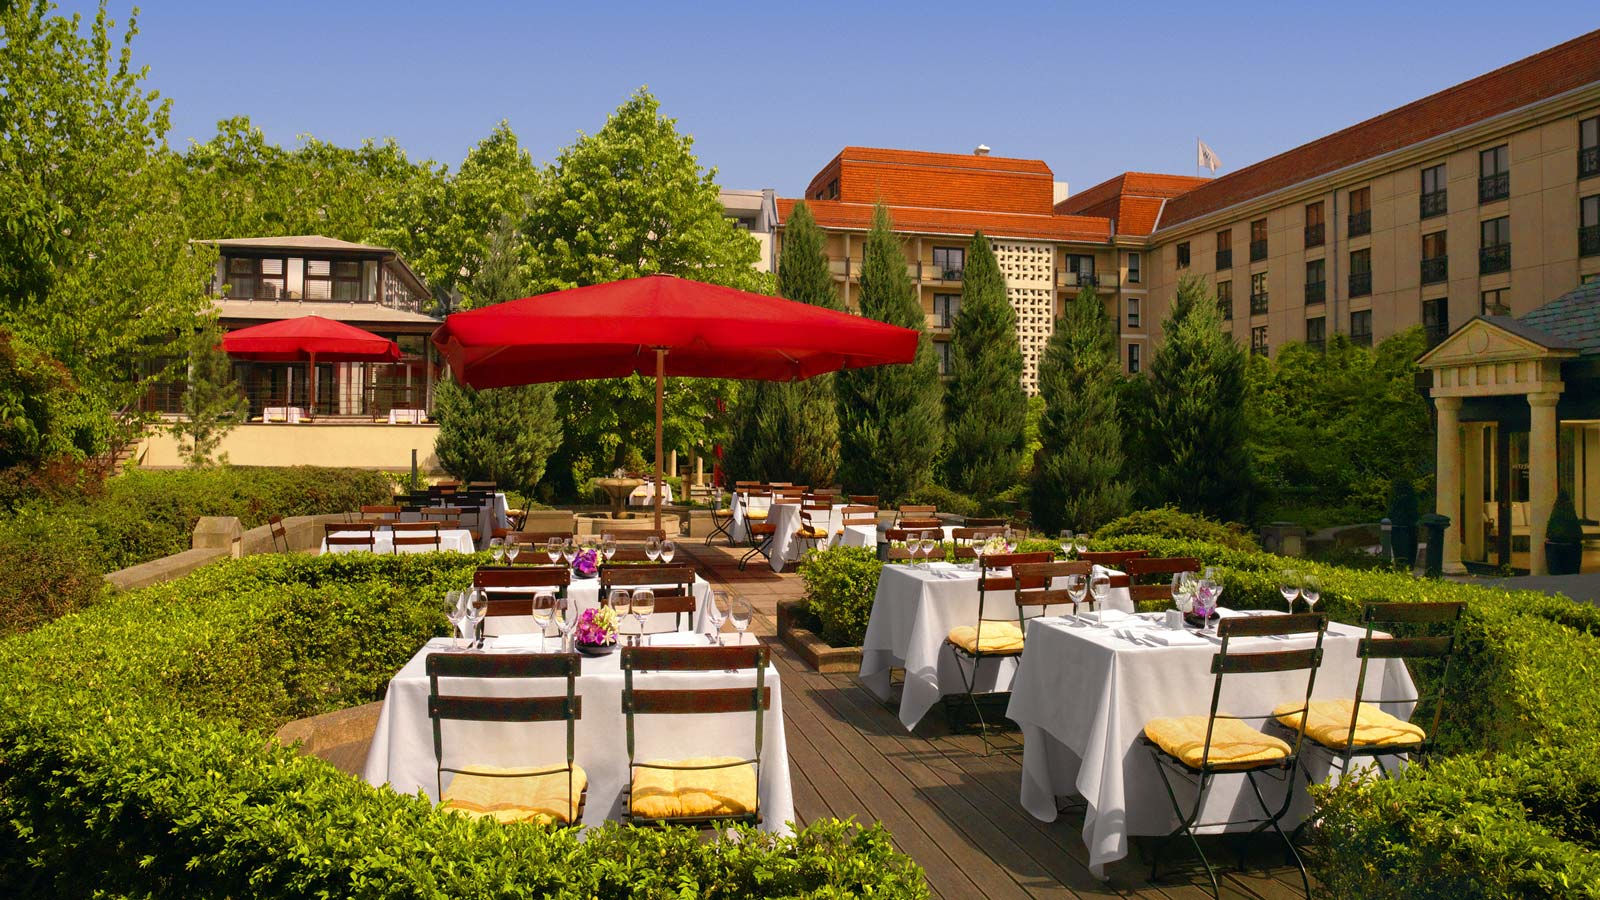 Hotel garden of The Westin Grand hotel in Berlin